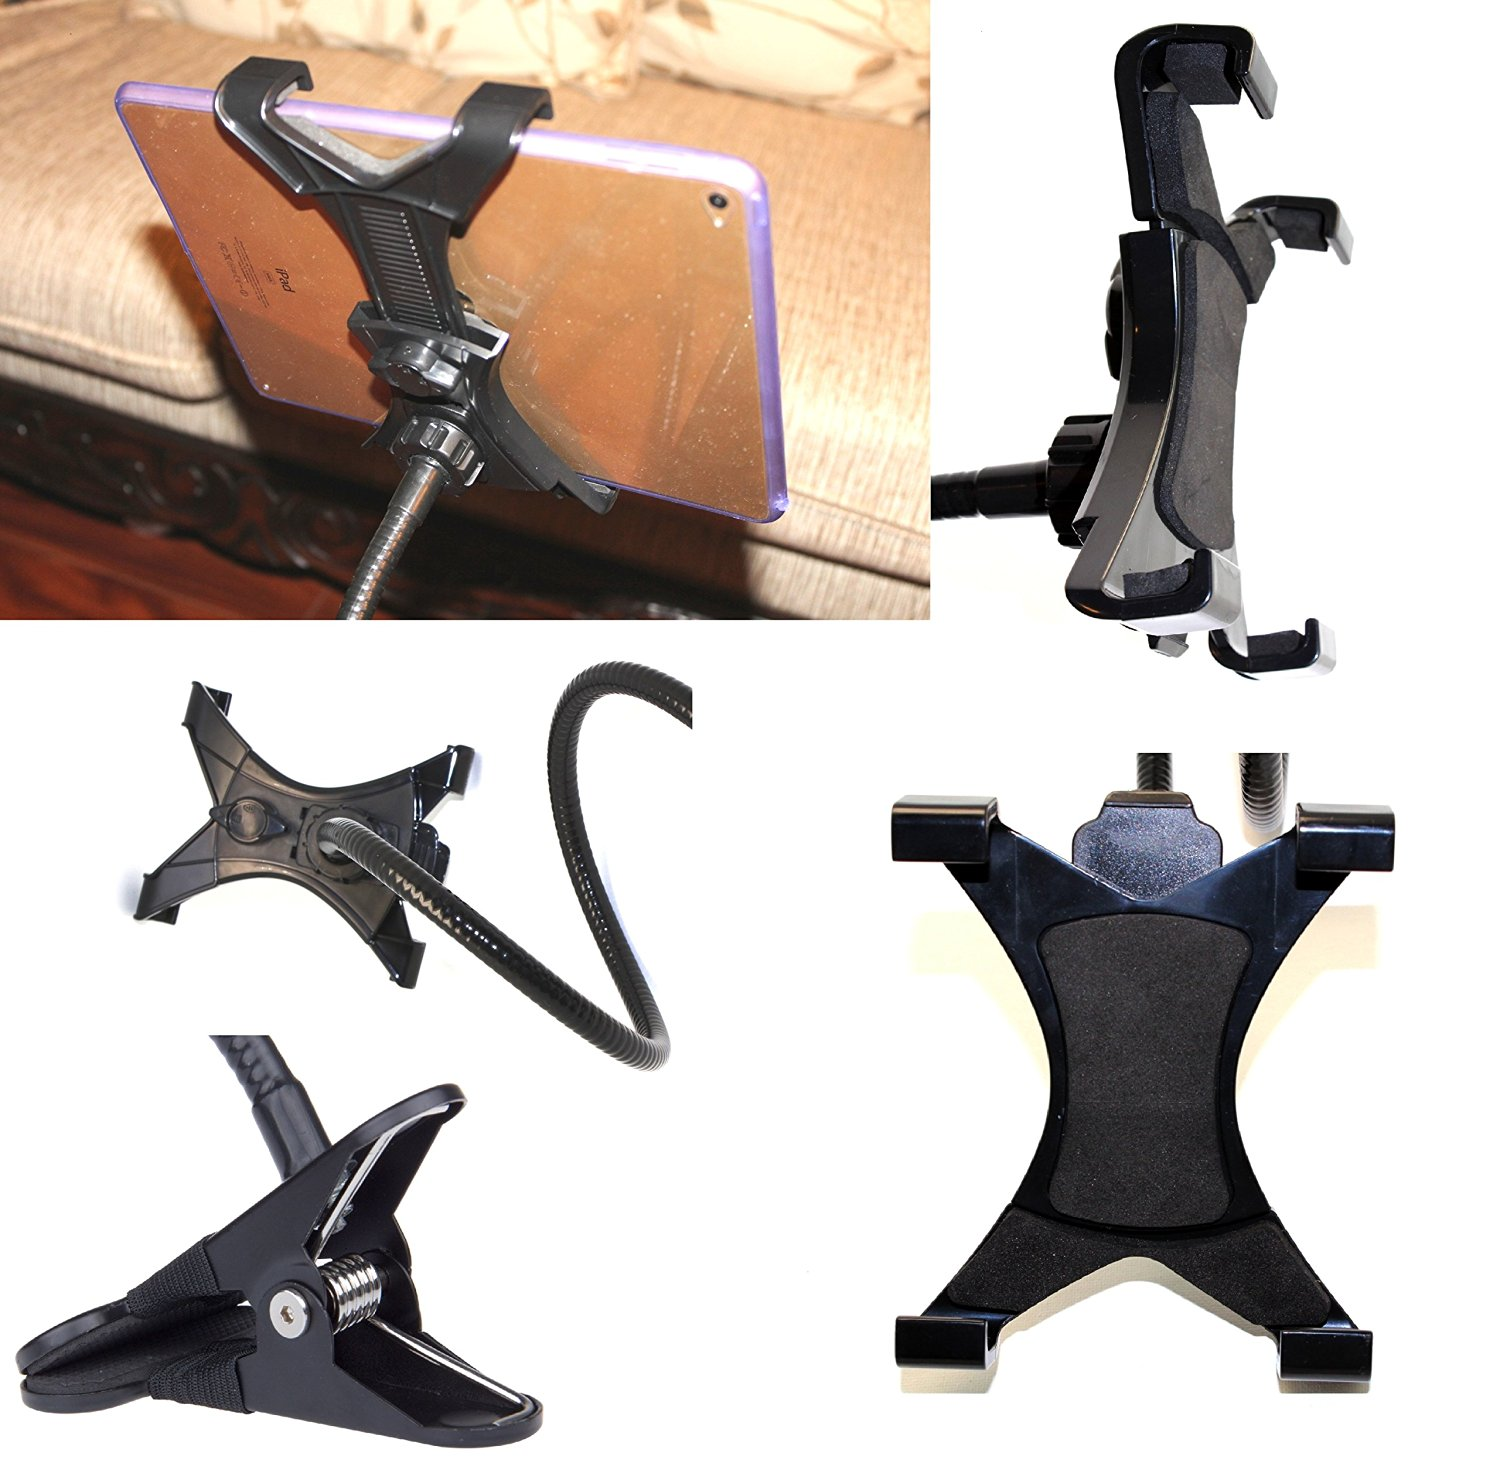 [USbuyForLess USA] Tablet Lazy Man Flexible 360 Degrees Rotating Desktop Stand Lazy Bed Tablet Holder Mount Gooseneck Desk Stand Clamp Mount Bed Stand Bracket Holder for iPad Air 2 Air Mini 2 Mini 3 Samsung Galaxy Note & All Other Tablets Fully Adjustable ((BLACK) Gooseneck Clamp)